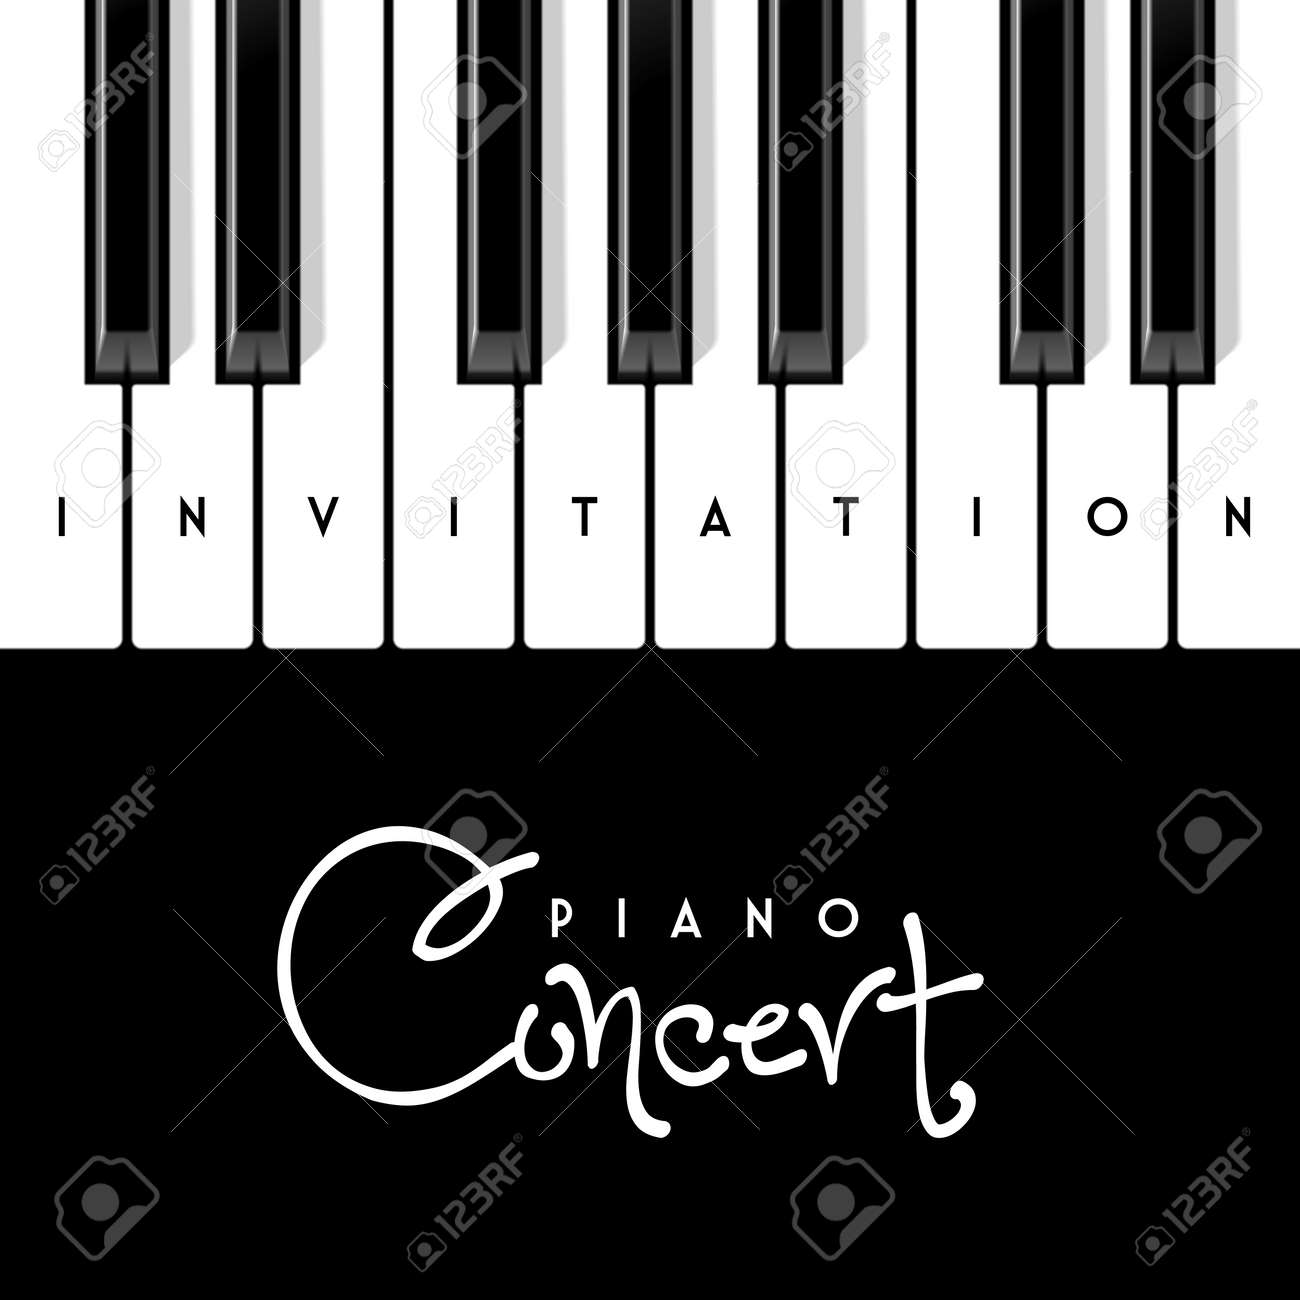 piano concert invitation design template stock vector 65332125